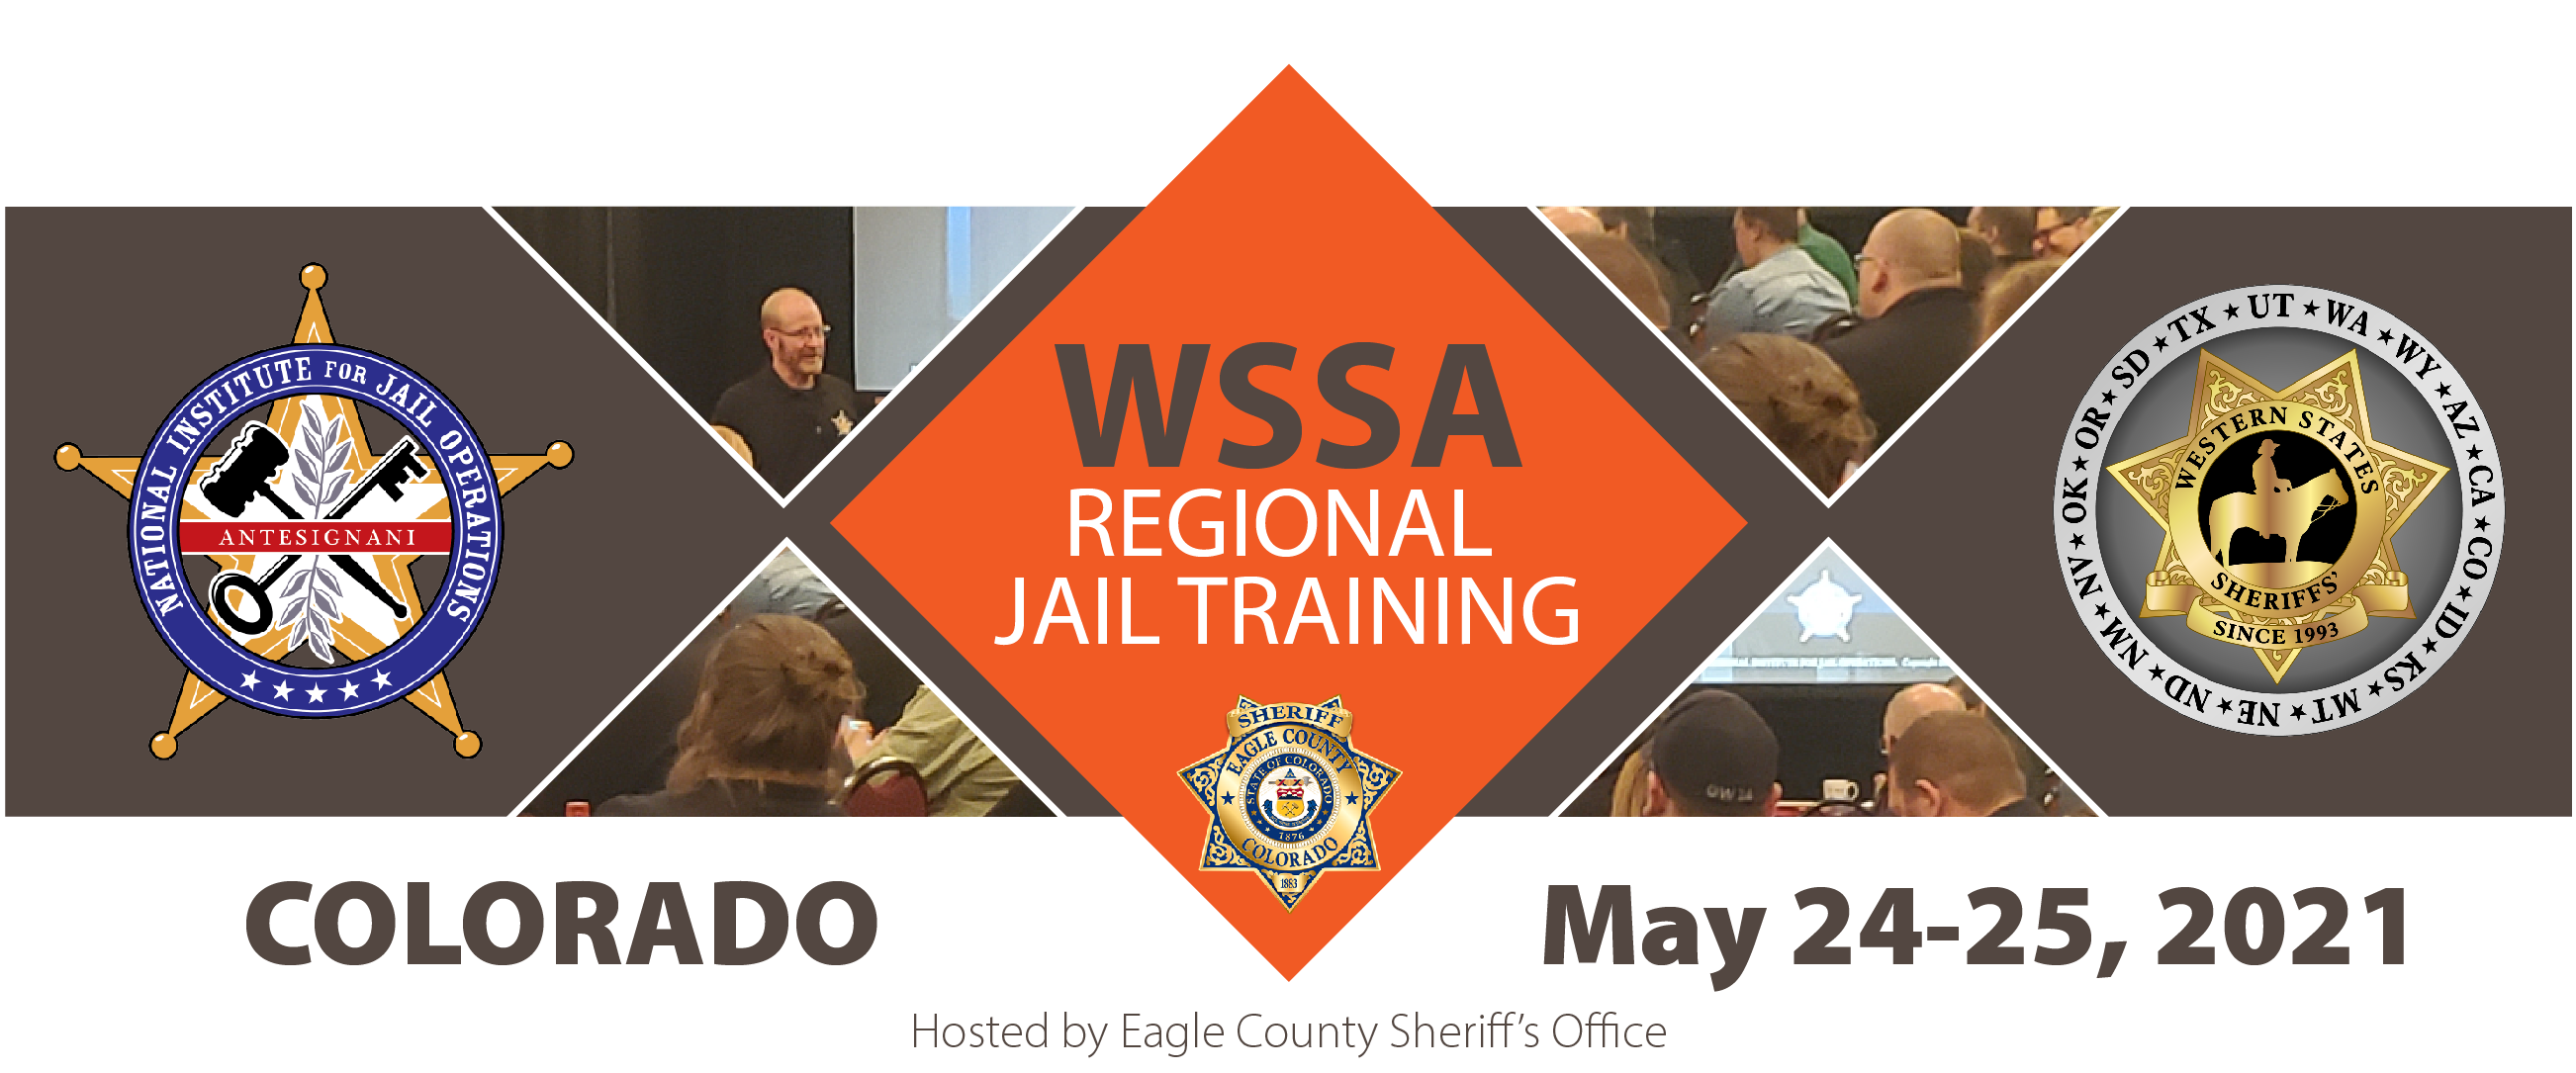 NIJO Legal-Based Training for Corrections Professionals in Eagle County Colorado